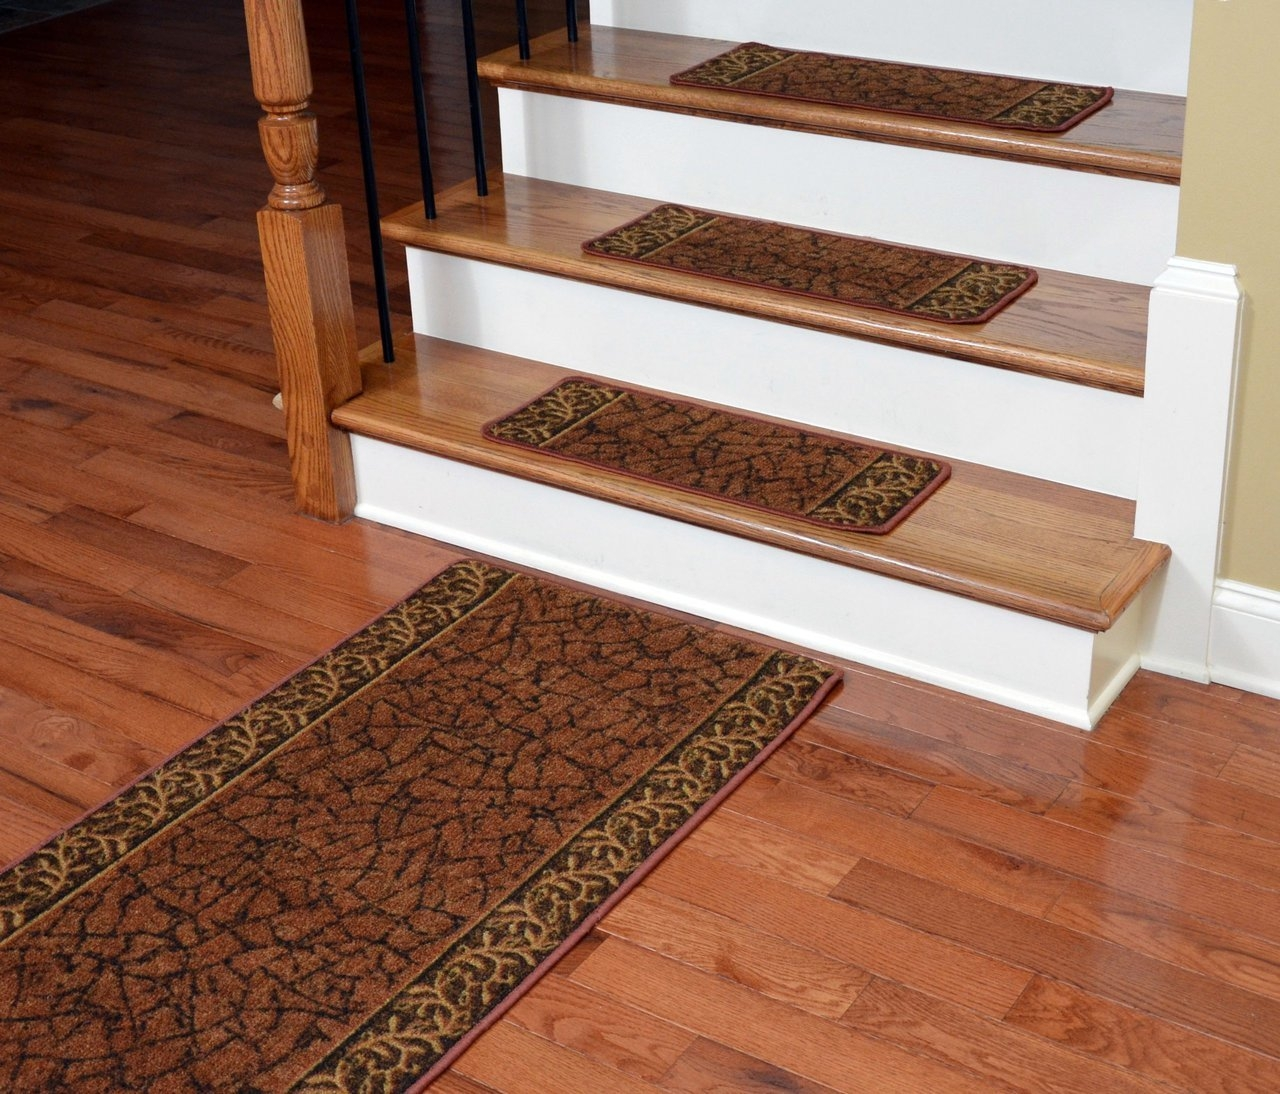 Dean Washable Non Skid Carpet Stair Treads Garden Path Terra Within Braided Stair Tread Rugs (Image 8 of 15)